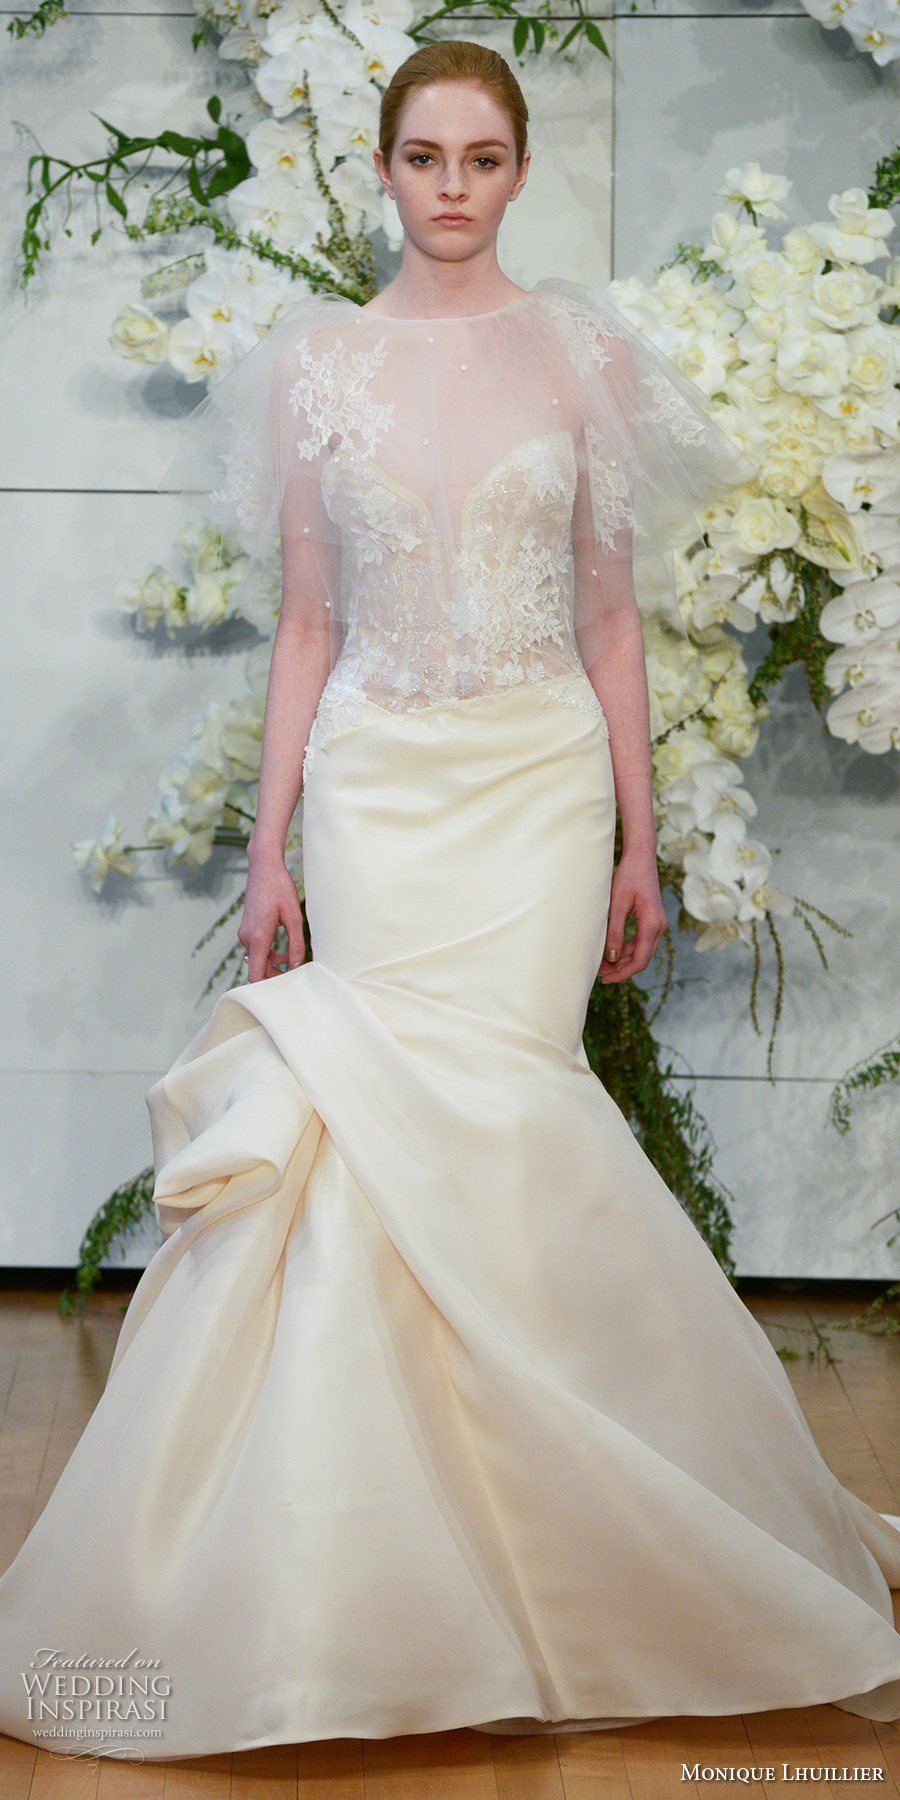 monique lhuillier spring 2018 bridal sheer bell sleeves illusion jewel deep plunging sweetheart neckline heavily embellished bodice elegant mermaid wedding dress chapel train (jamie) mv